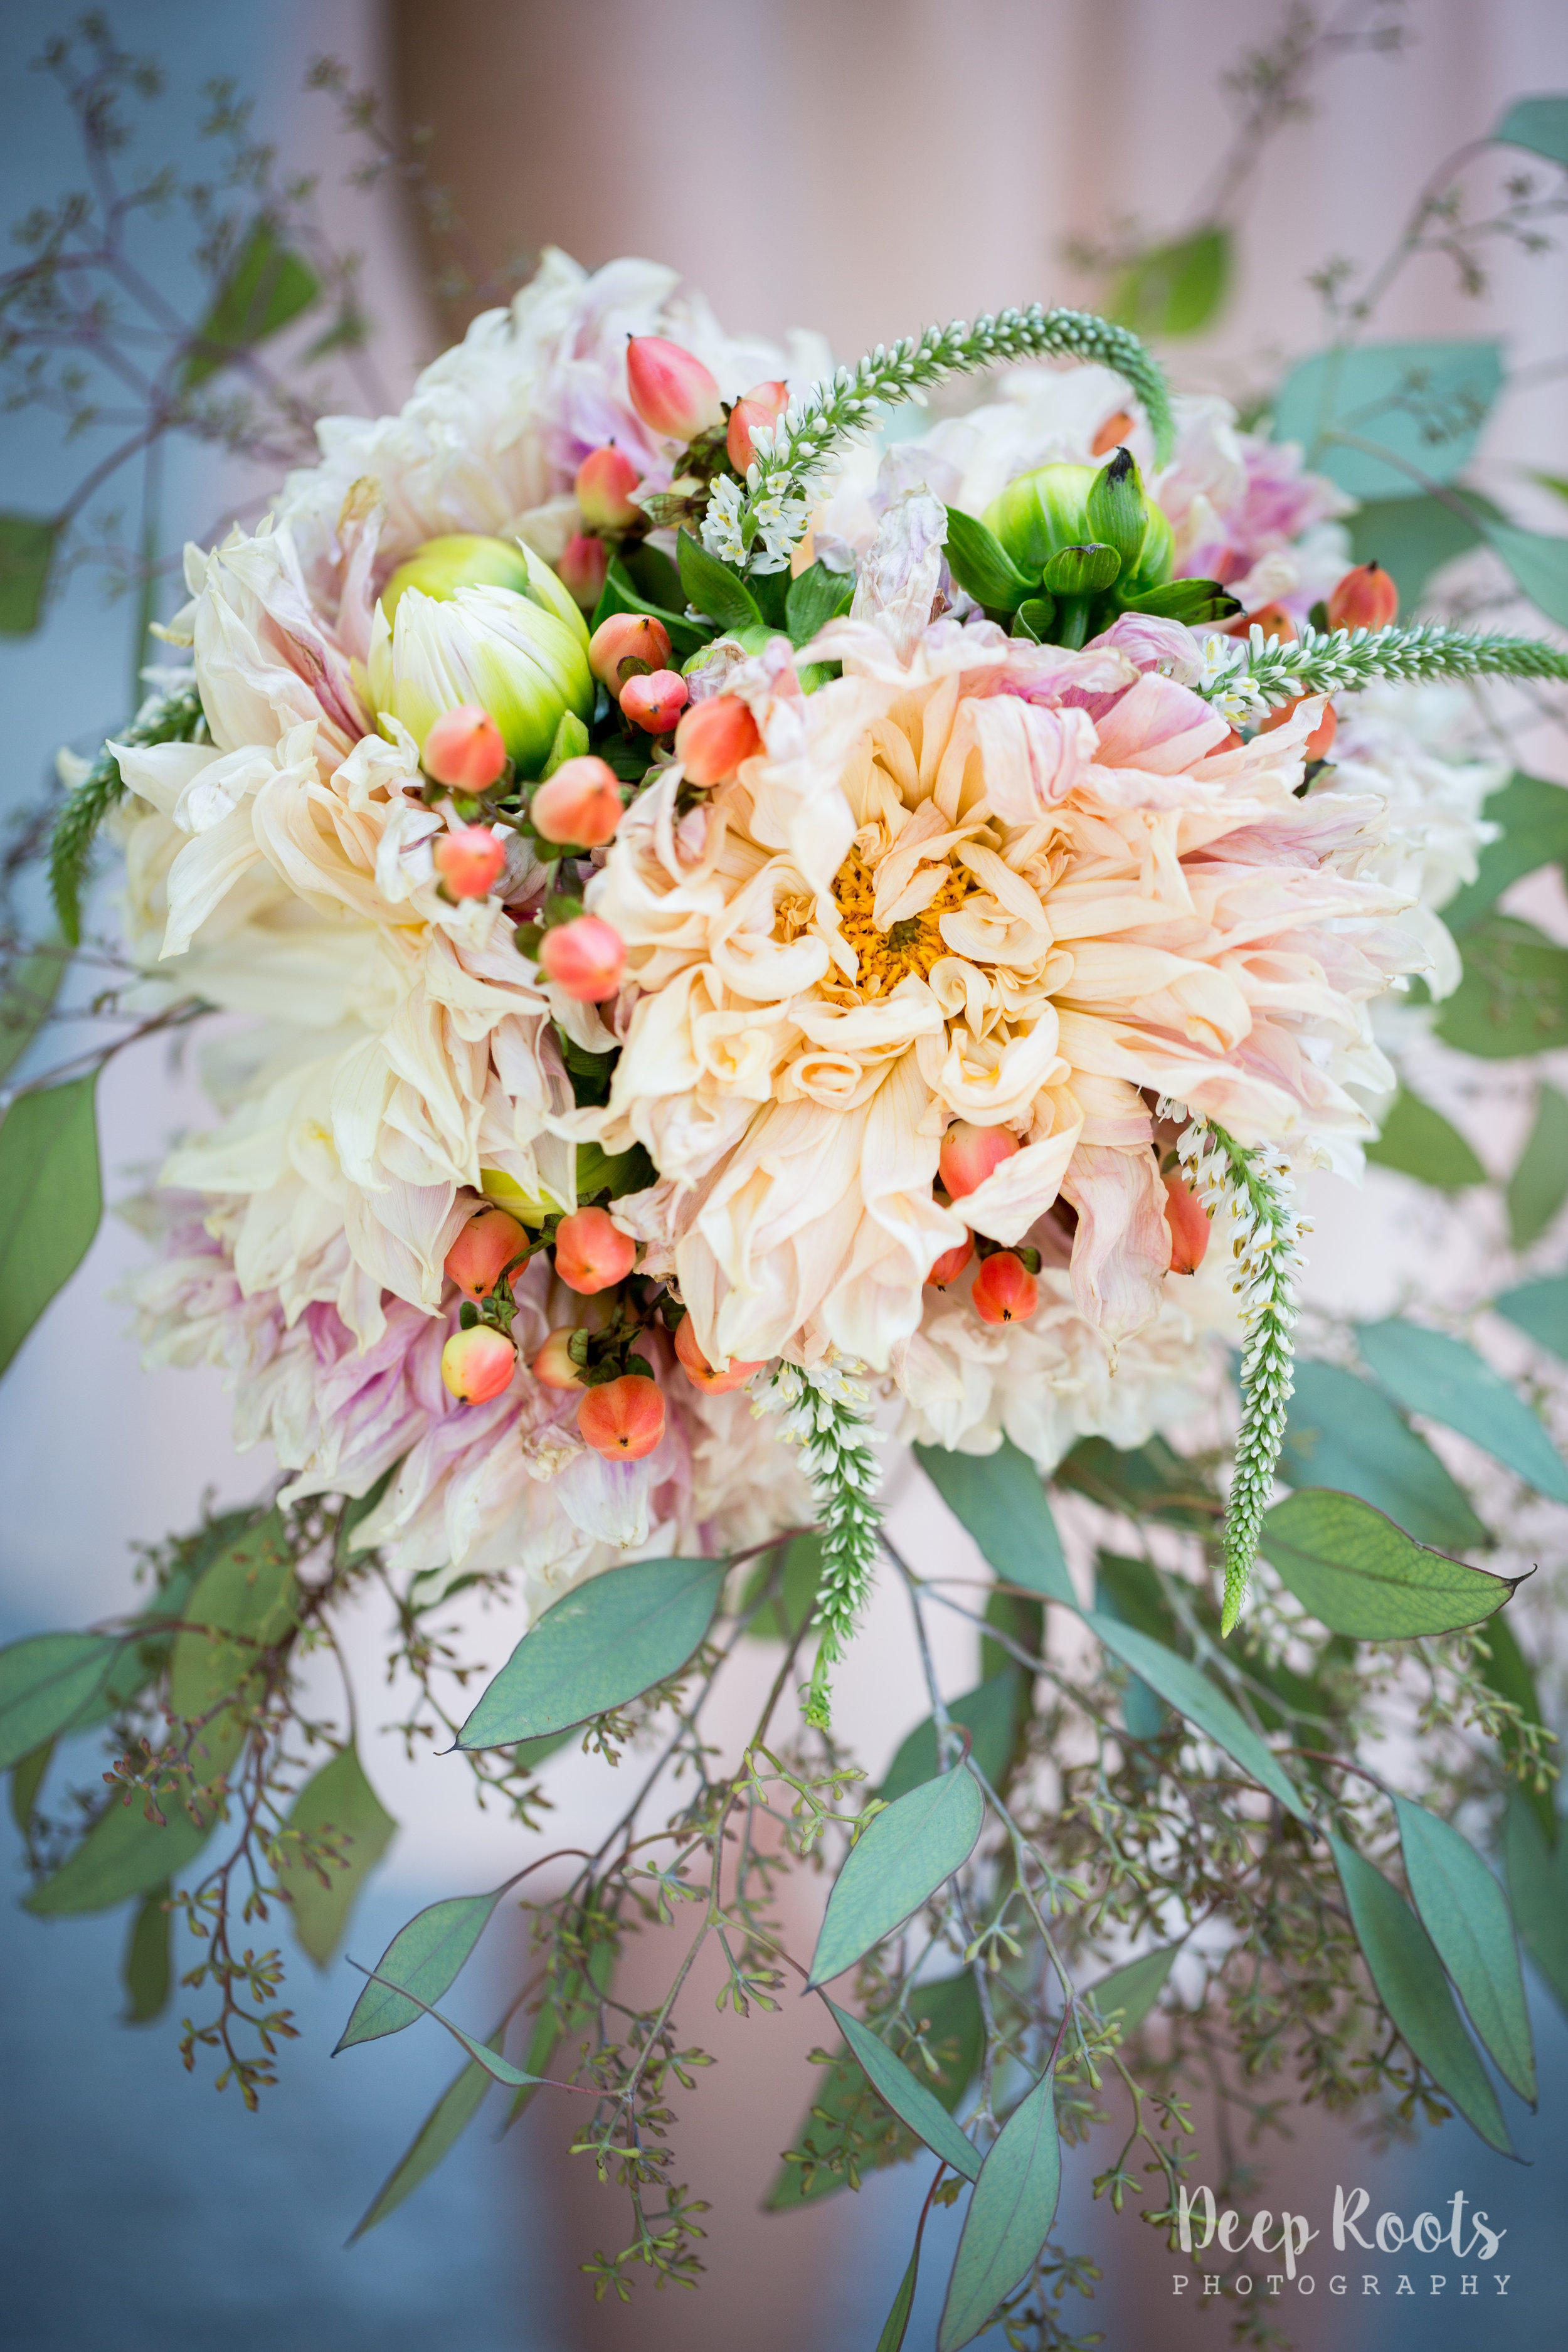 Just look at that bouquet. So. Perfect.